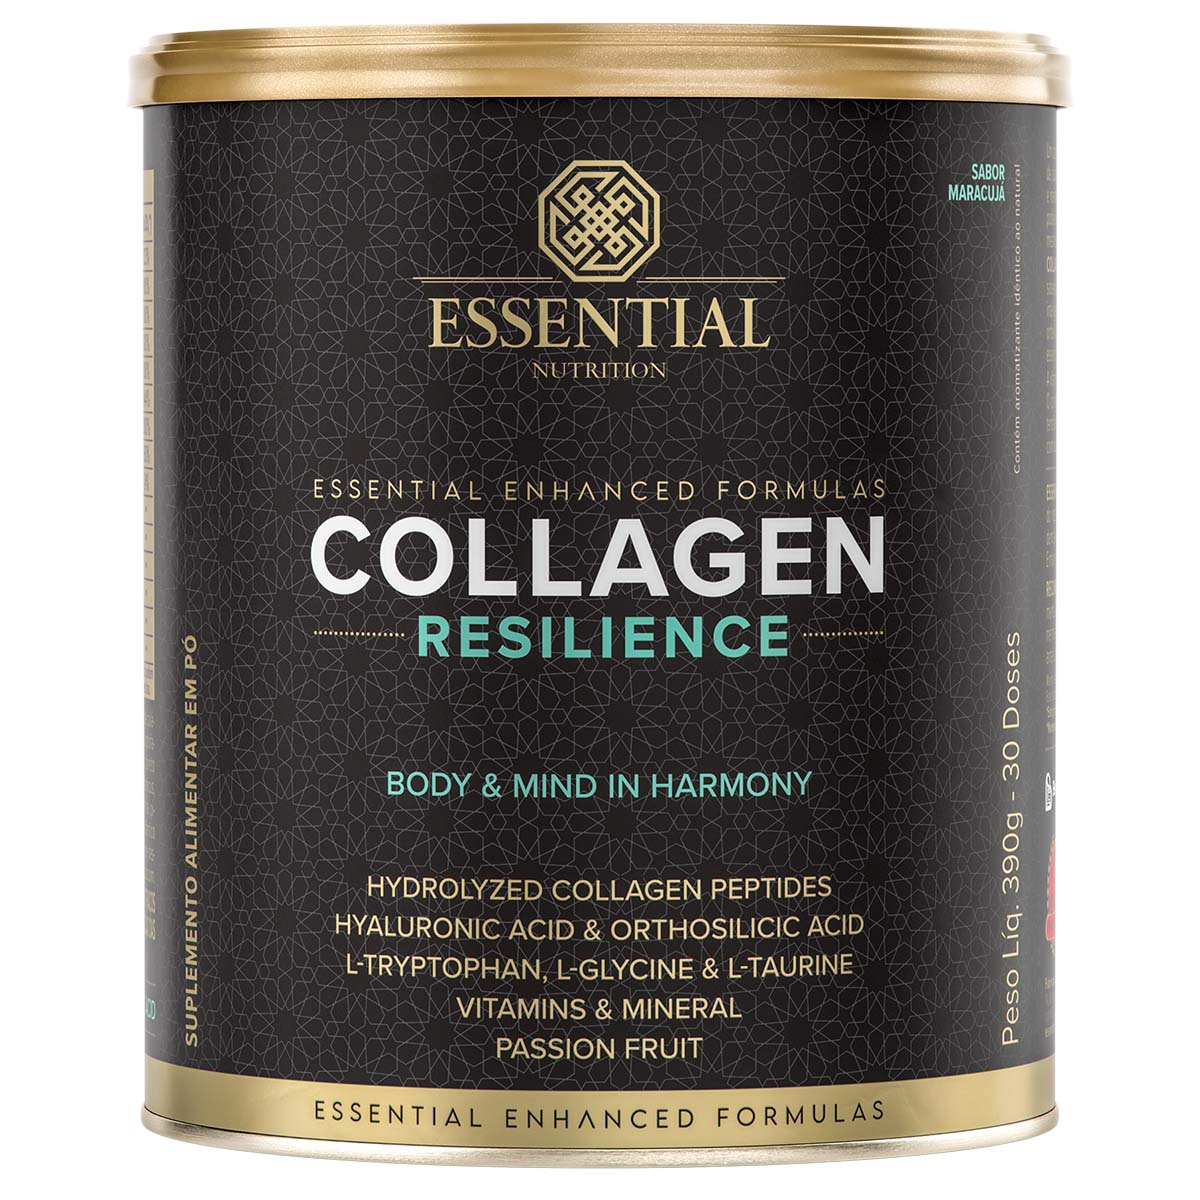 Collagen Resilience 390g - Essential Nutrition